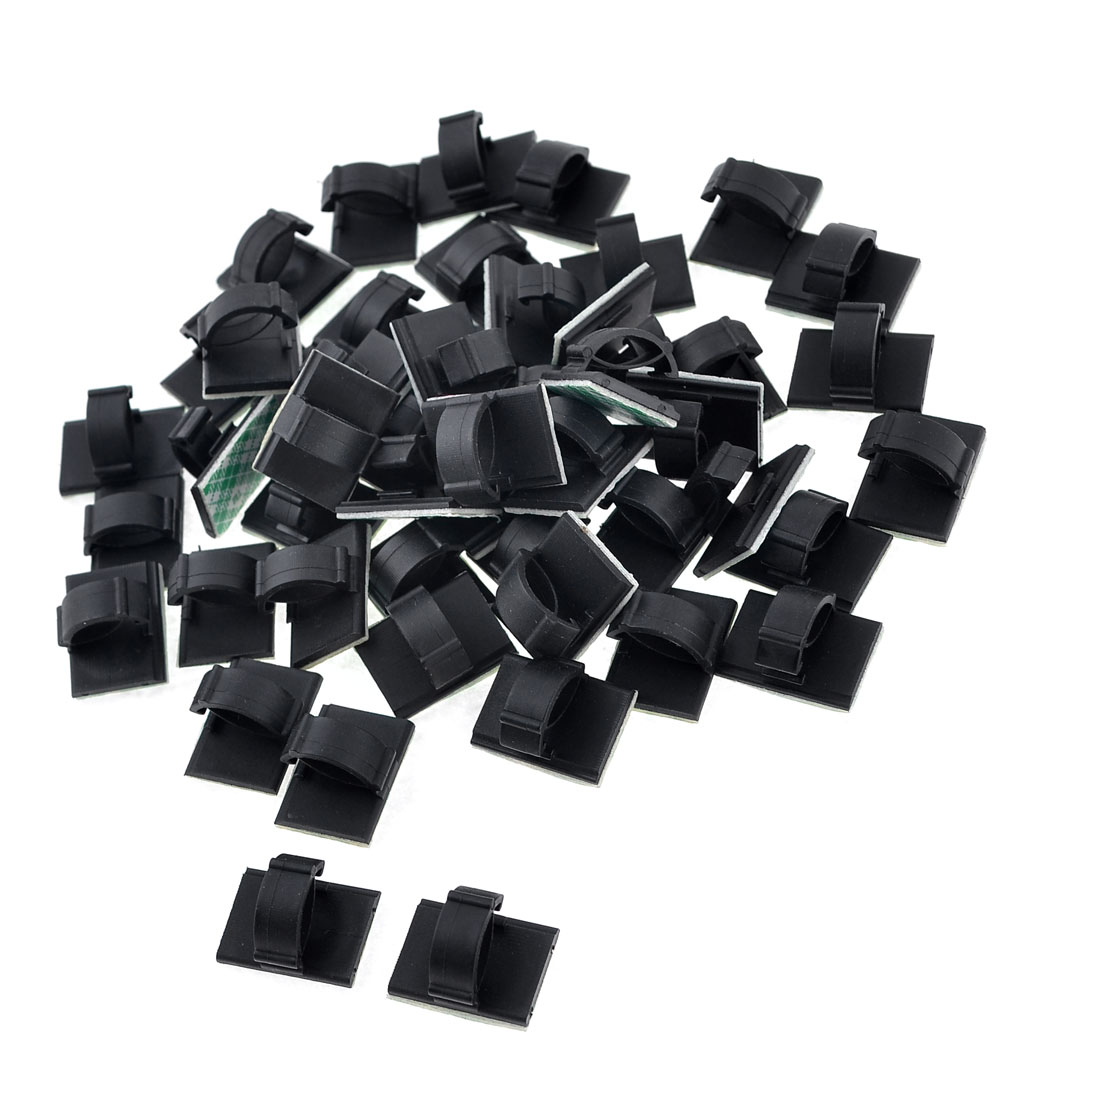 50 x Rectangle Self-adhesive 10mm Cable Tie Mount Clips Black